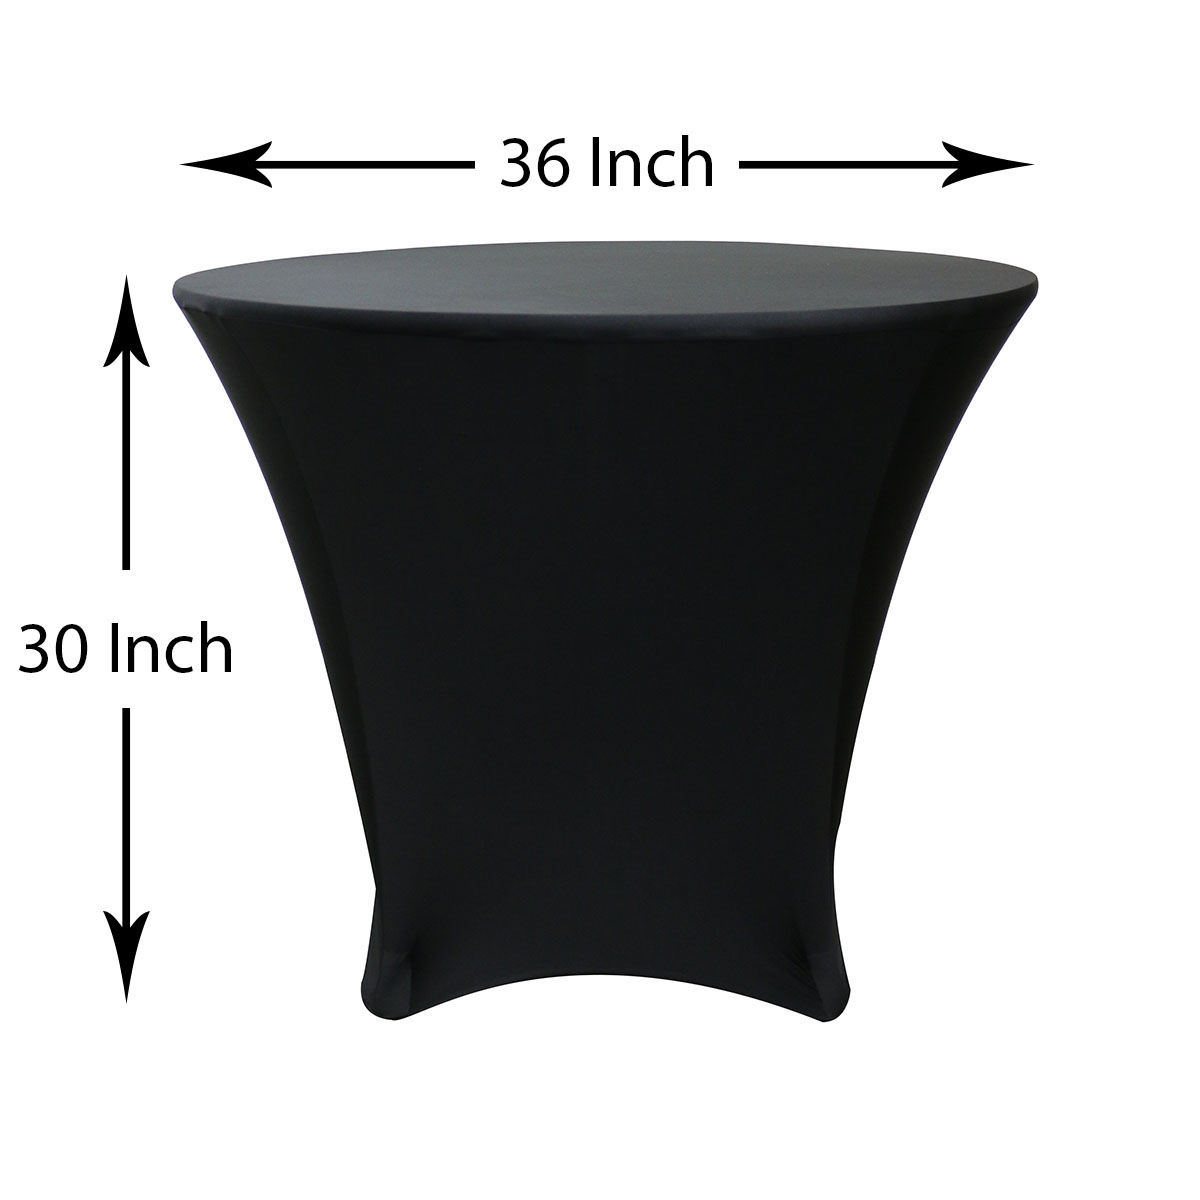 36 x 30 inch Round Spandex Highboy Cocktail Table Covers